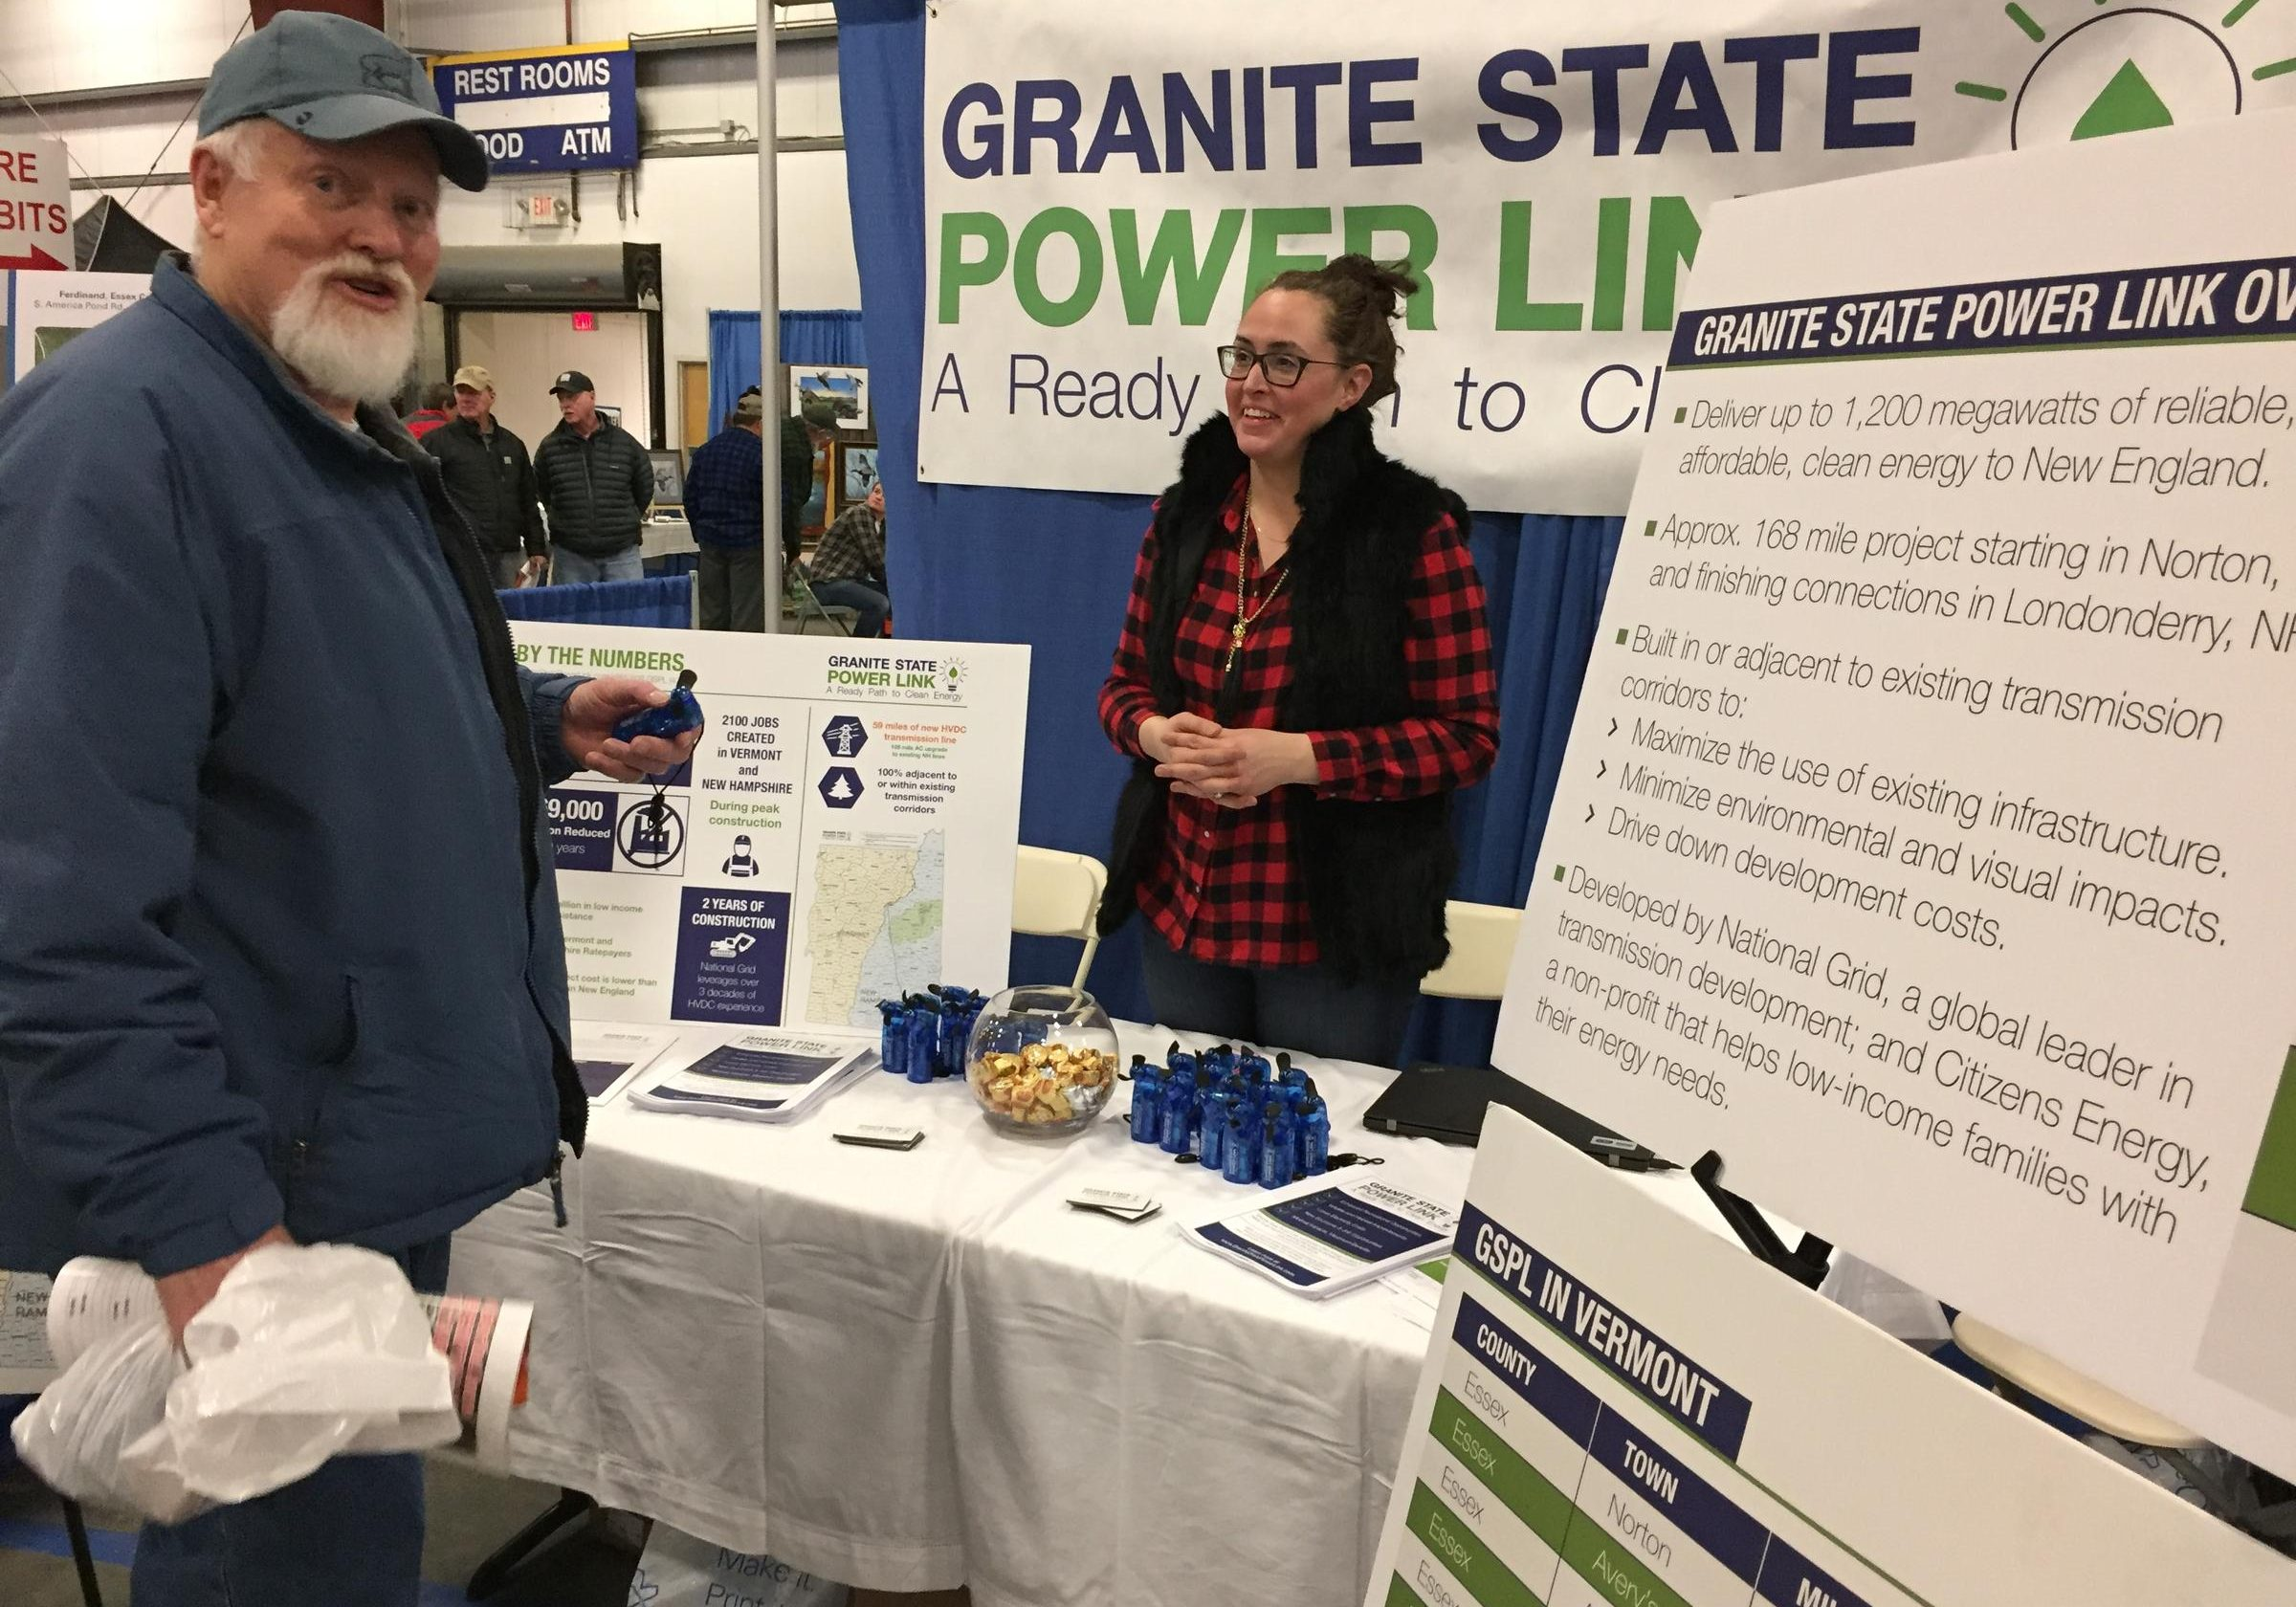 As part of its outreach, National Grid and its Granite State Power Link sponsored the Yankee Sportsman's Classic, an annual show that draws 15,000 for exhibits and workshops on hunting and angling. Photo by John Dillon for VPR